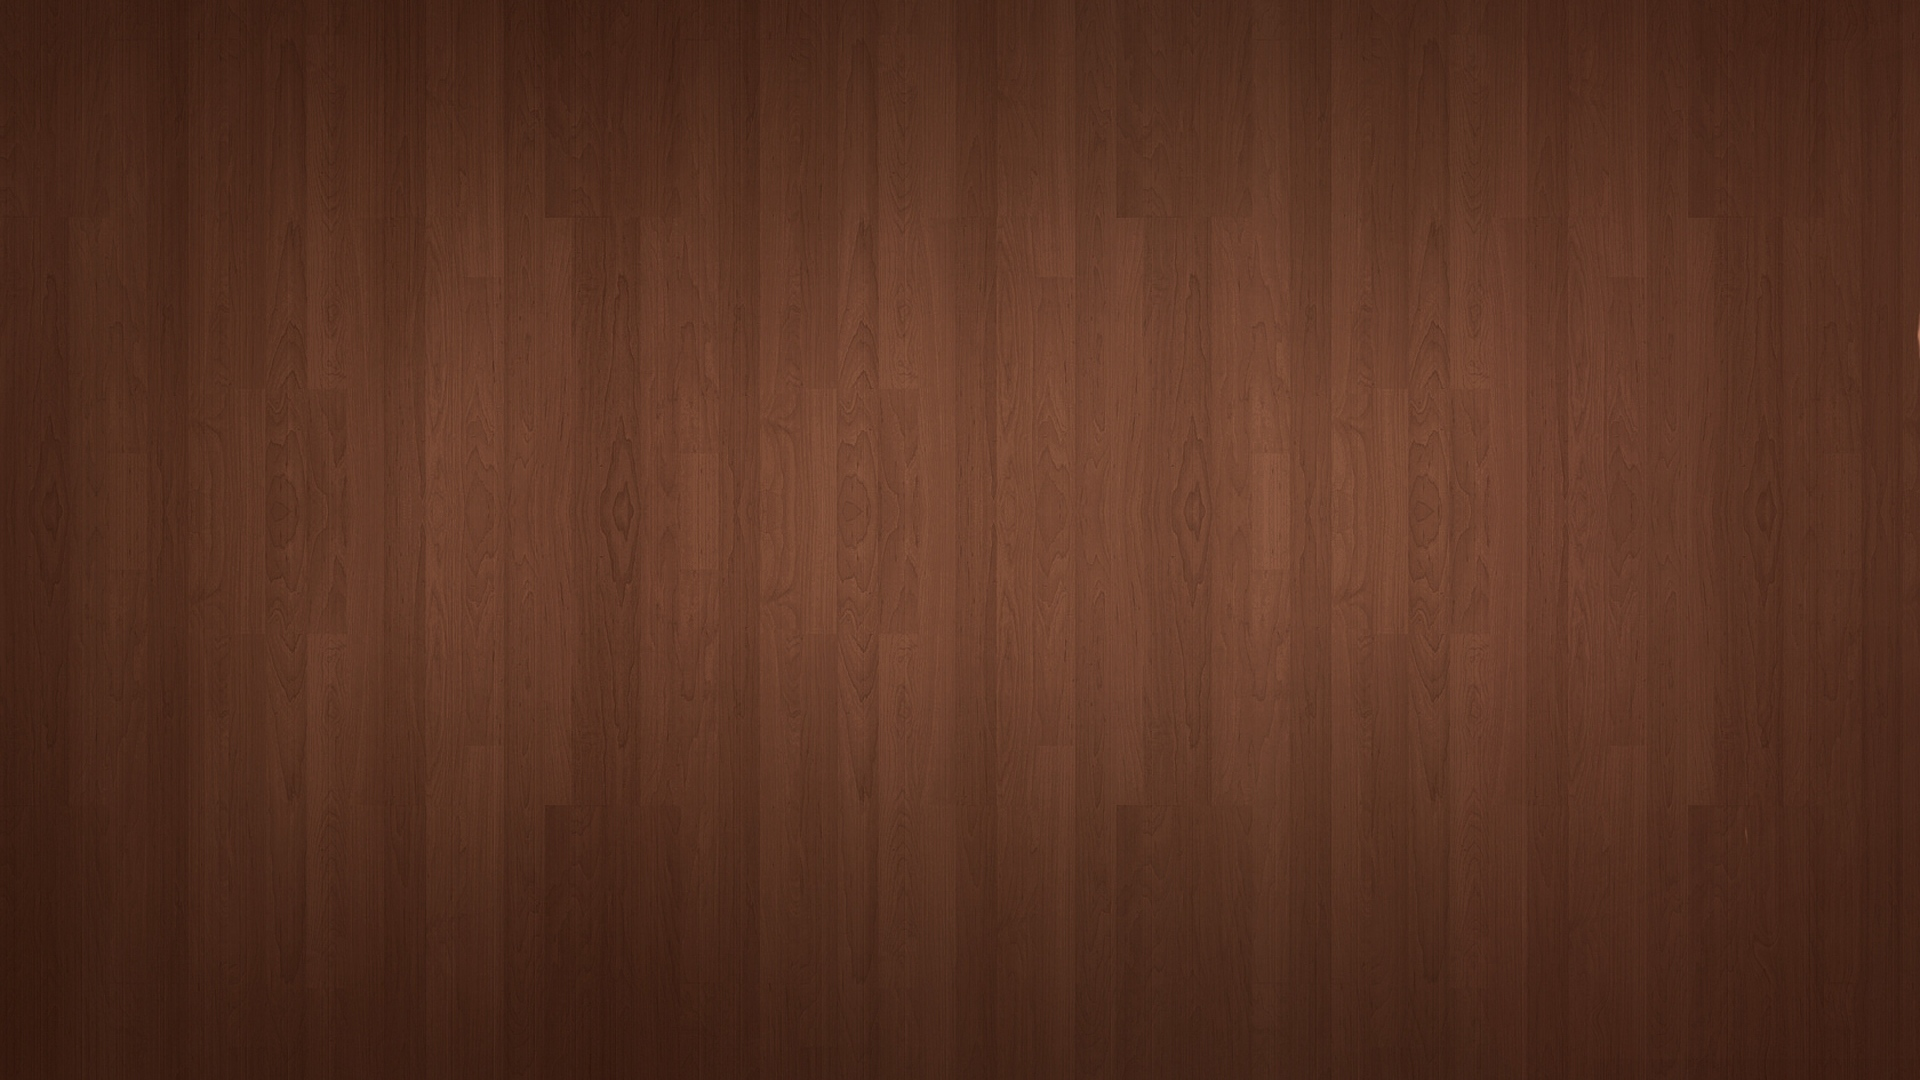 Download wallpaper 1920x1080 wooden background board full hd 1920x1080